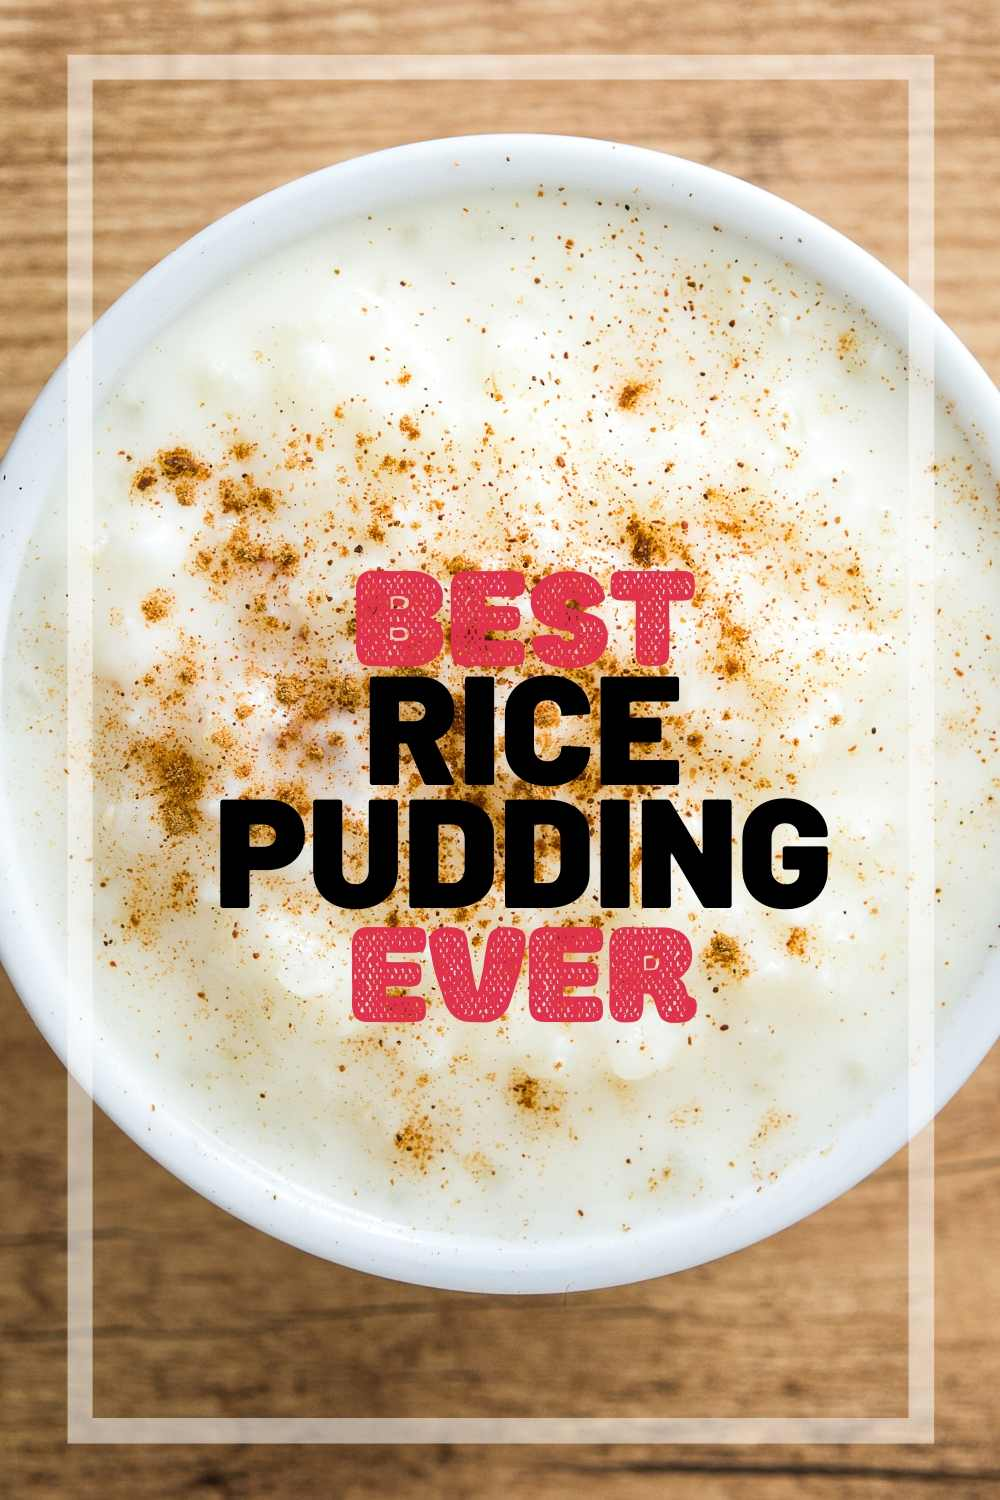 BEST RICE PUDDING ever